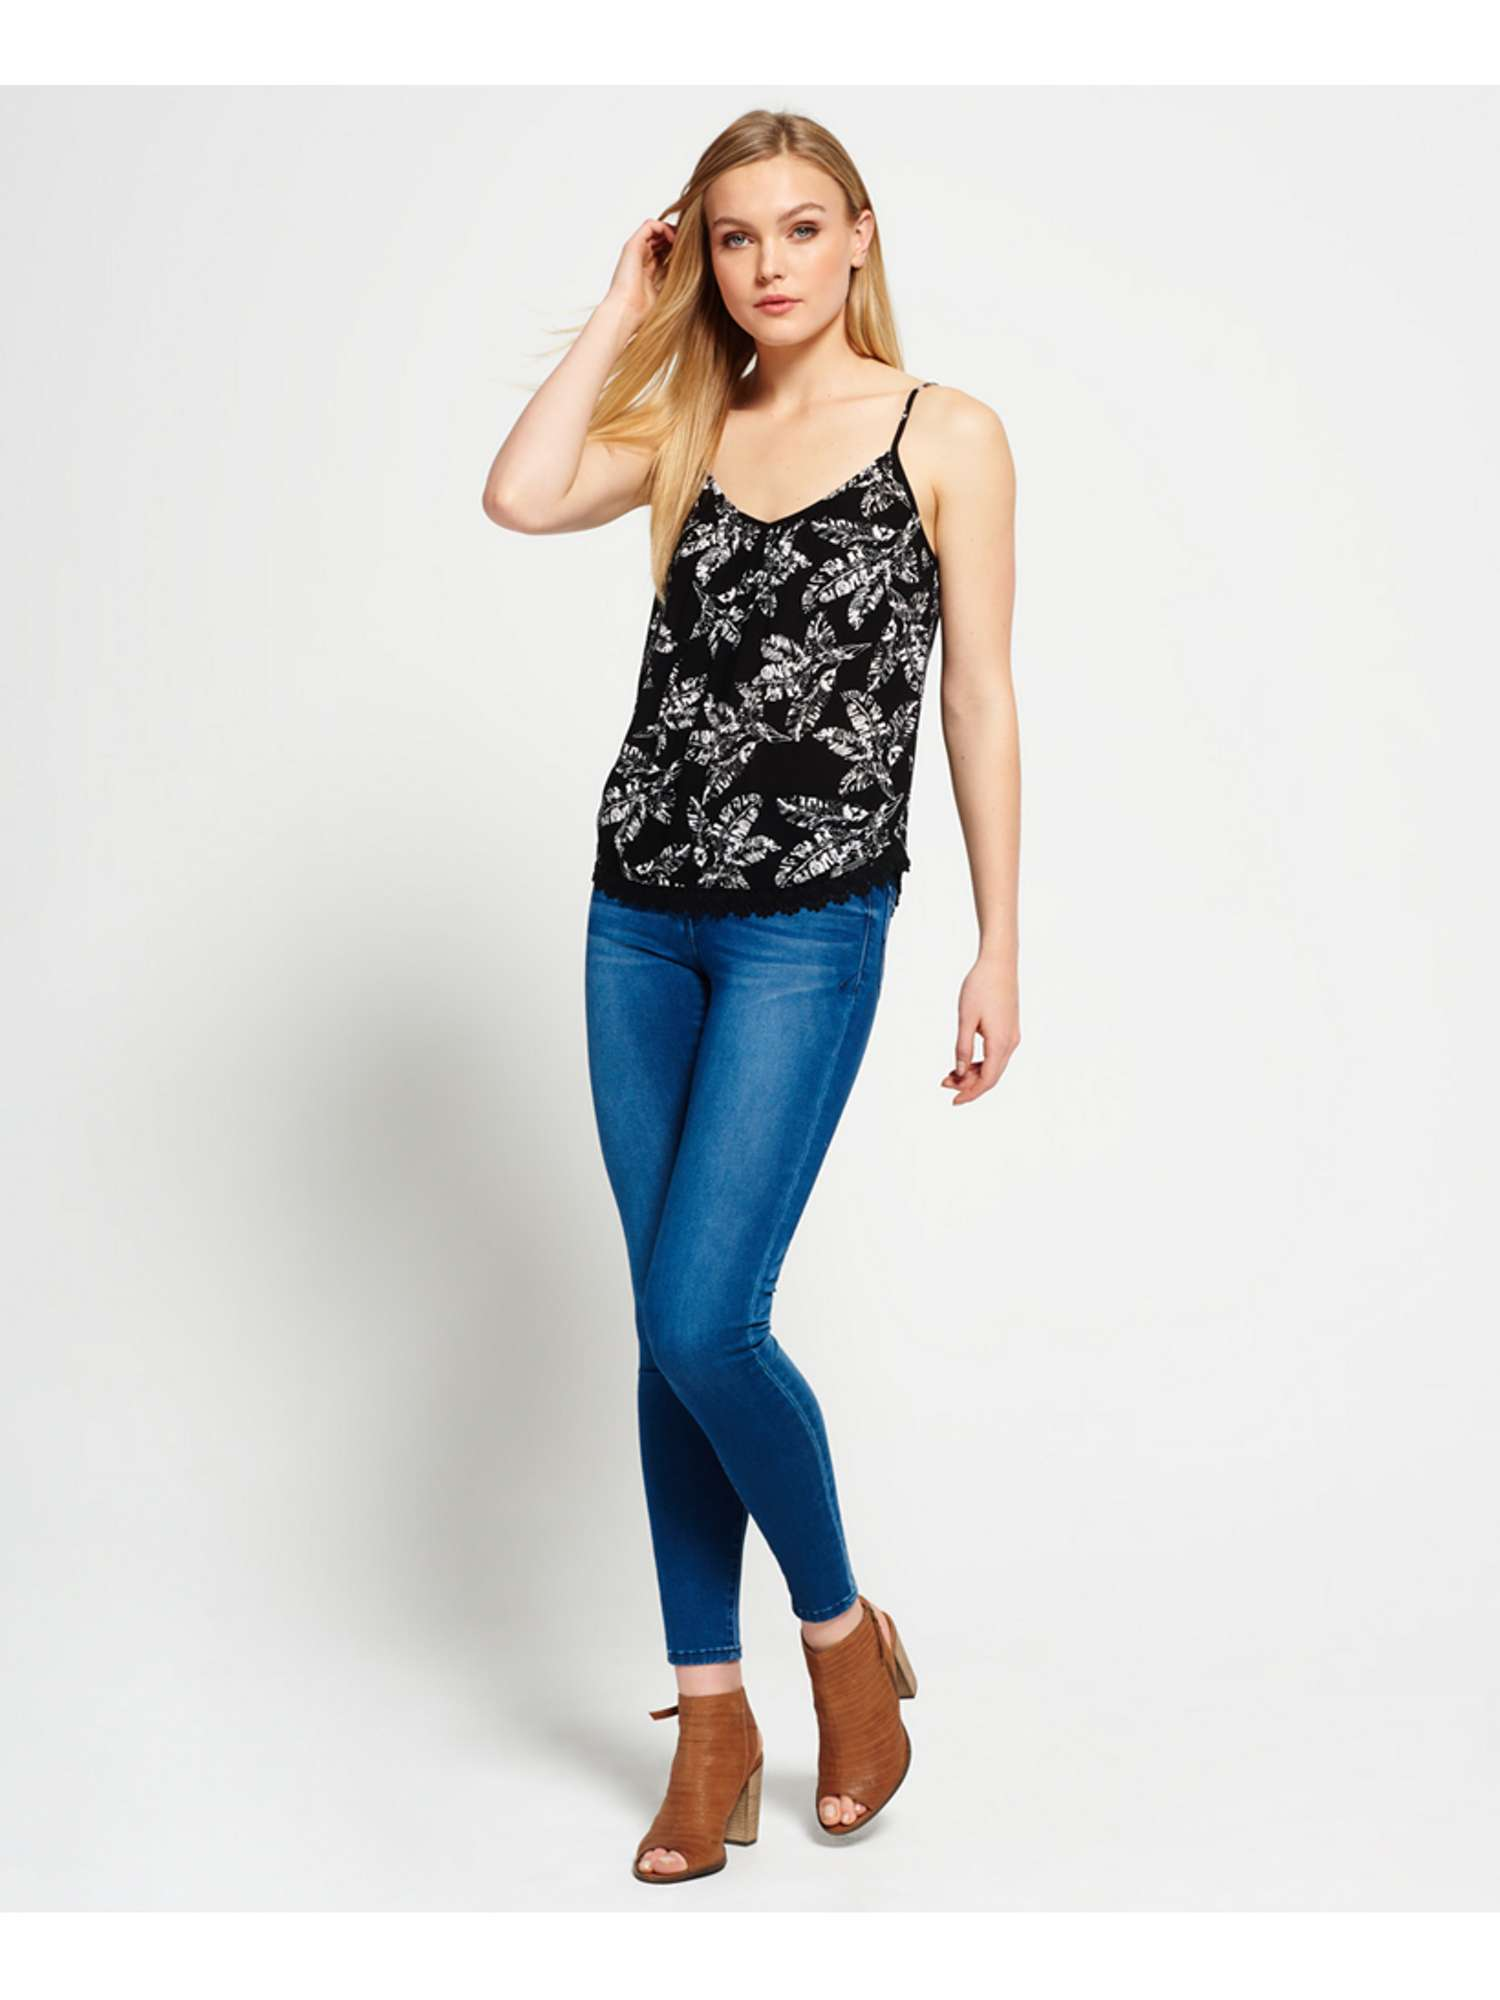 Cami Essential Lacy Superdry Essential Top Superdry 0IqnaERn